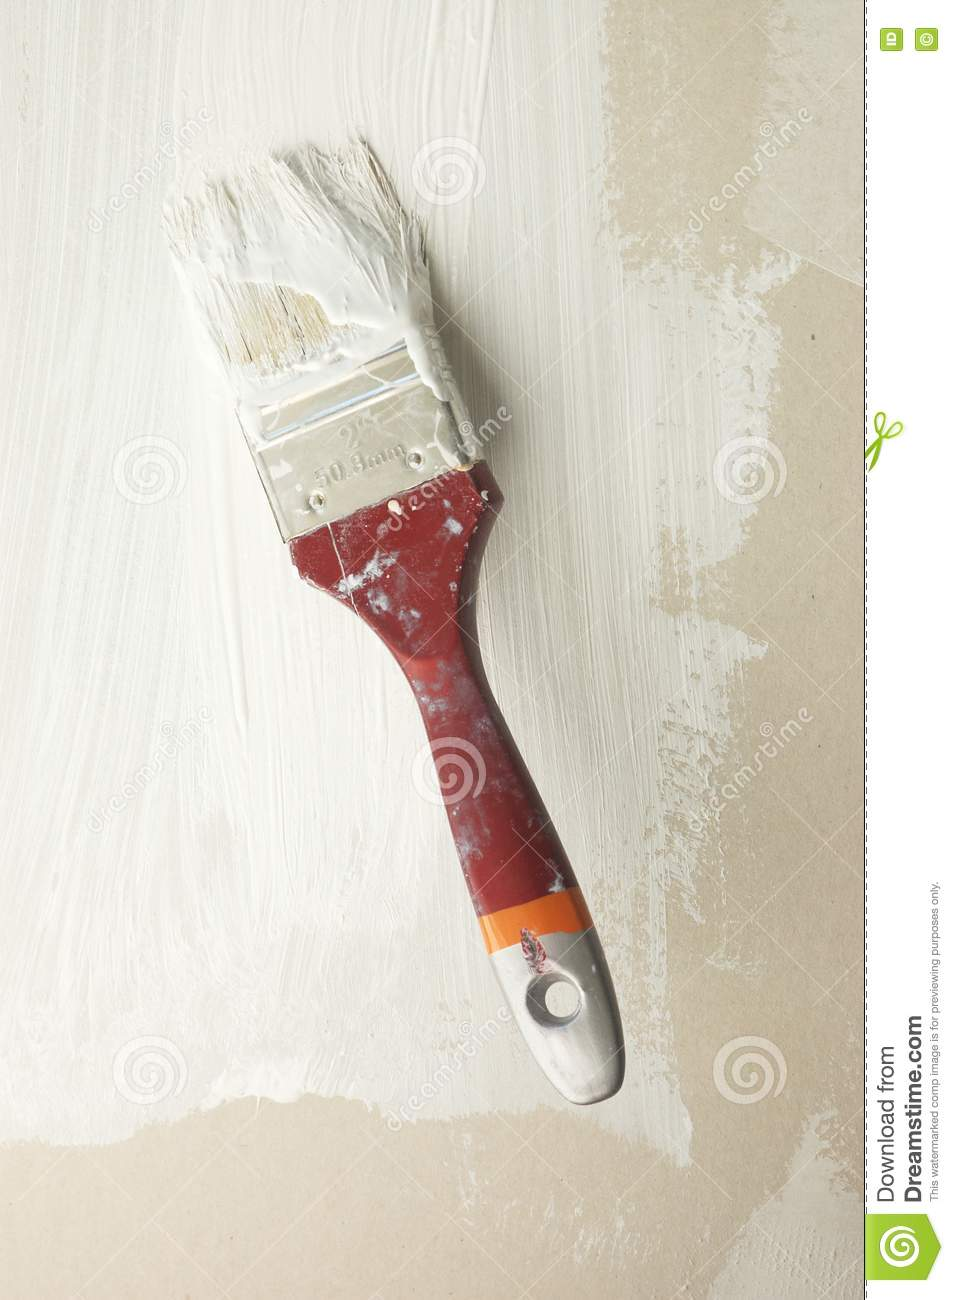 Wall Design Paint Brush : Brush in white paint on wall stock photography image